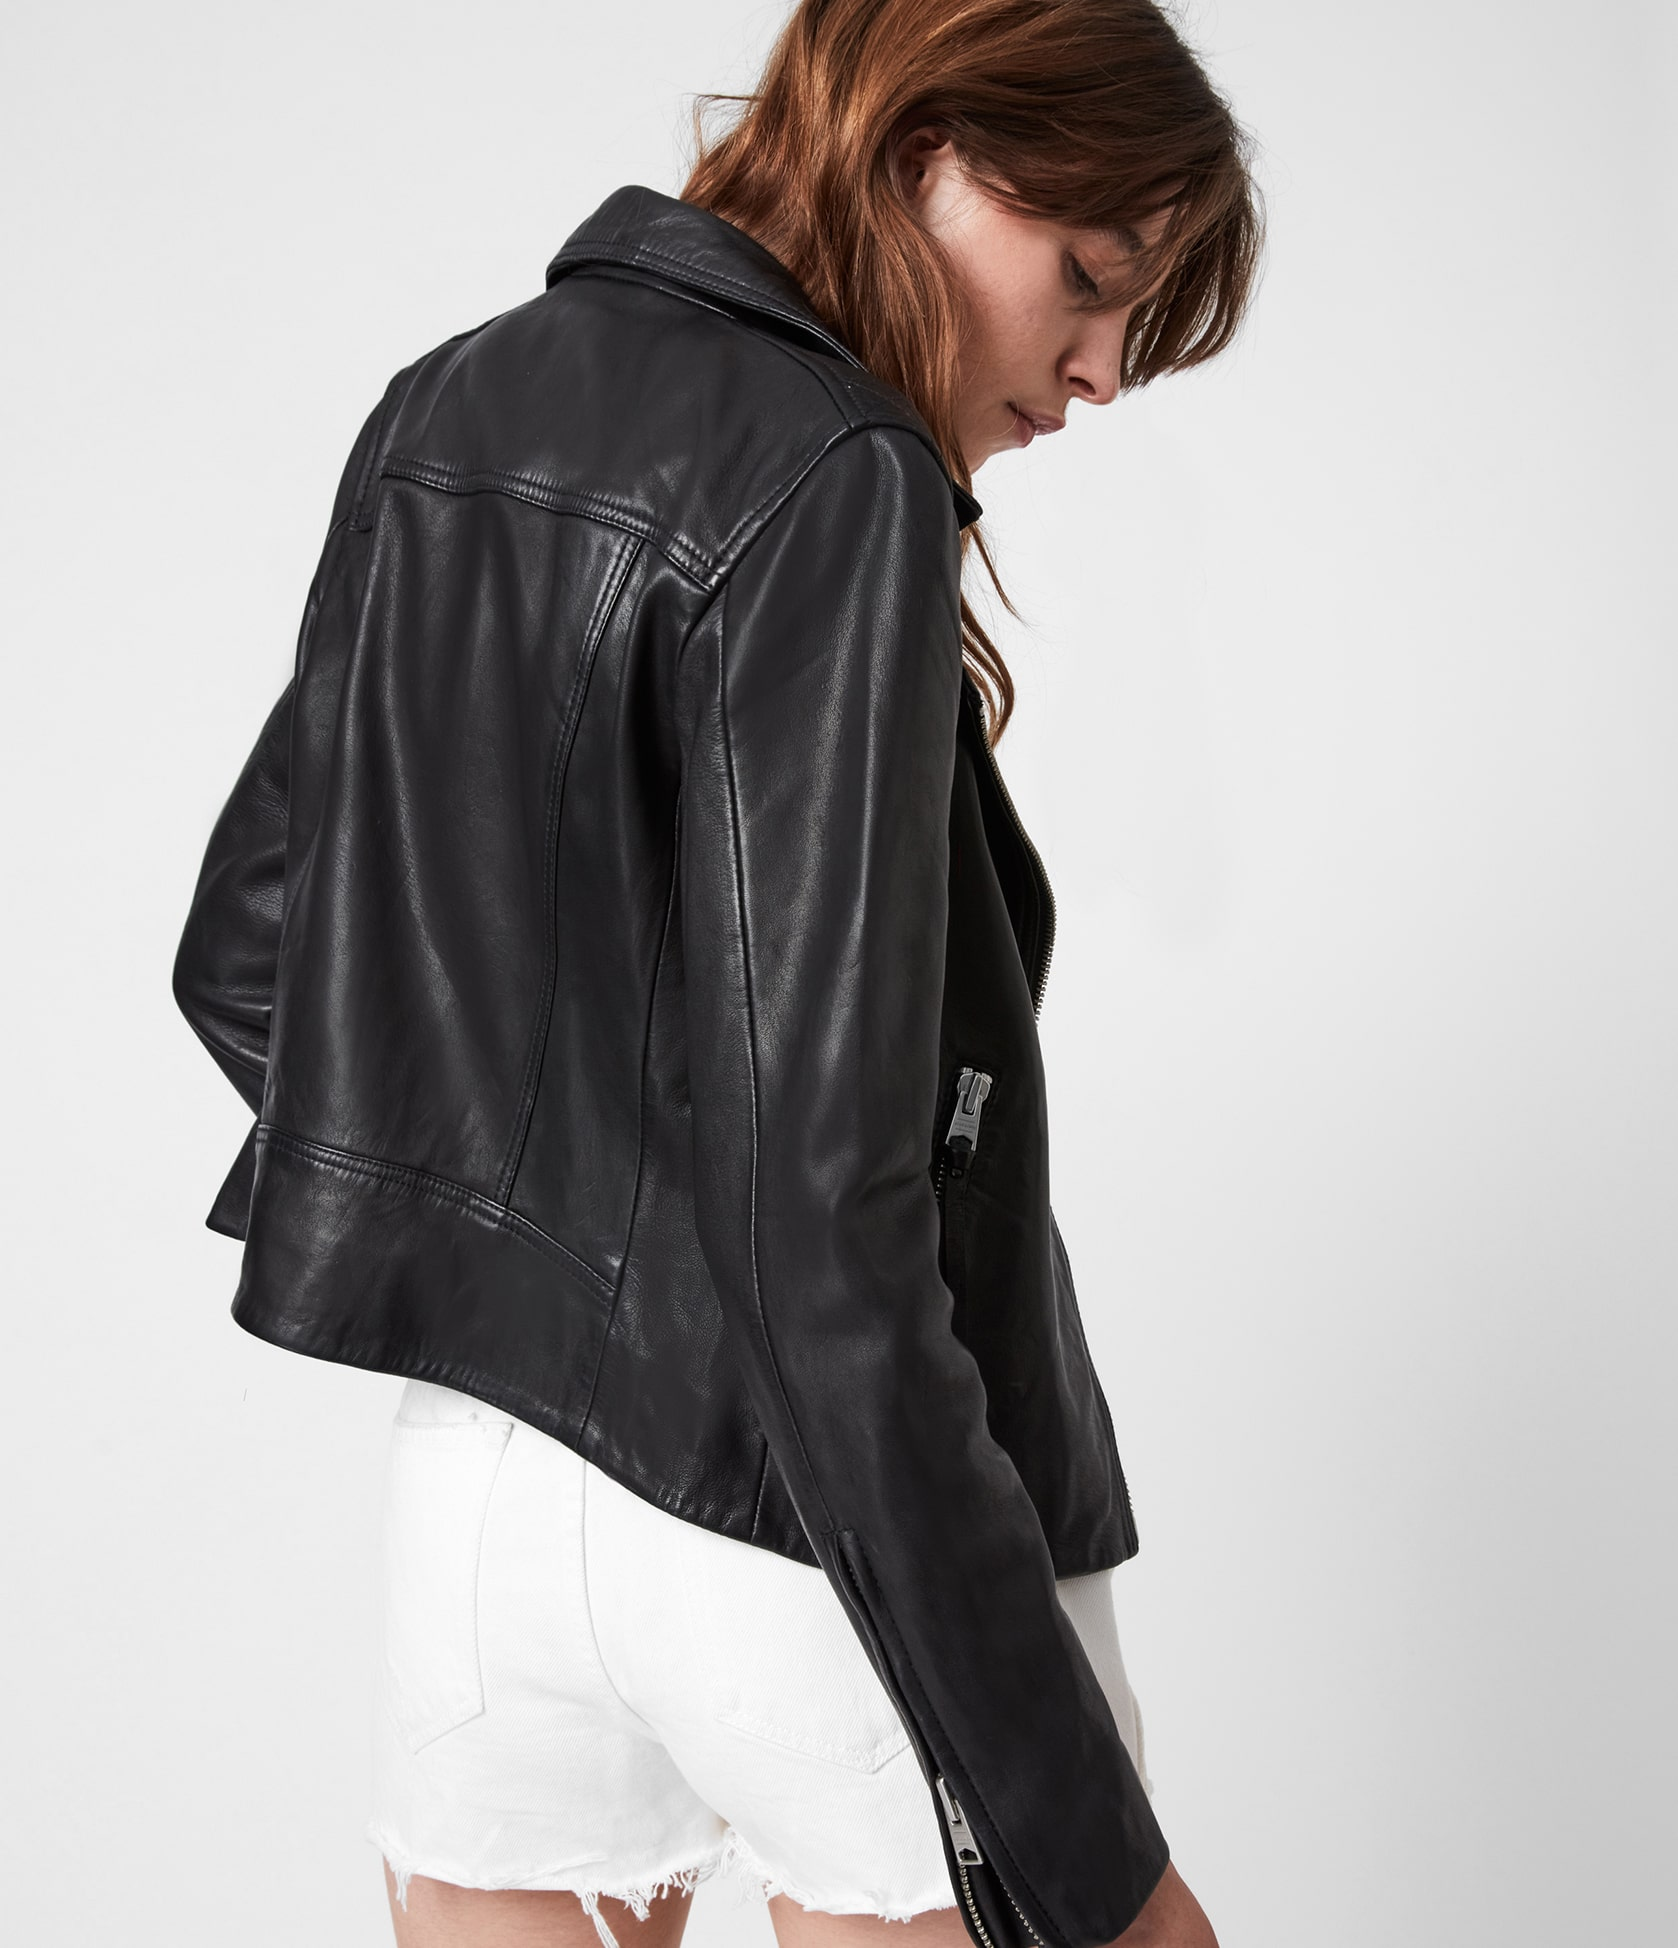 Women's Dalby Leather Jacket - Side View